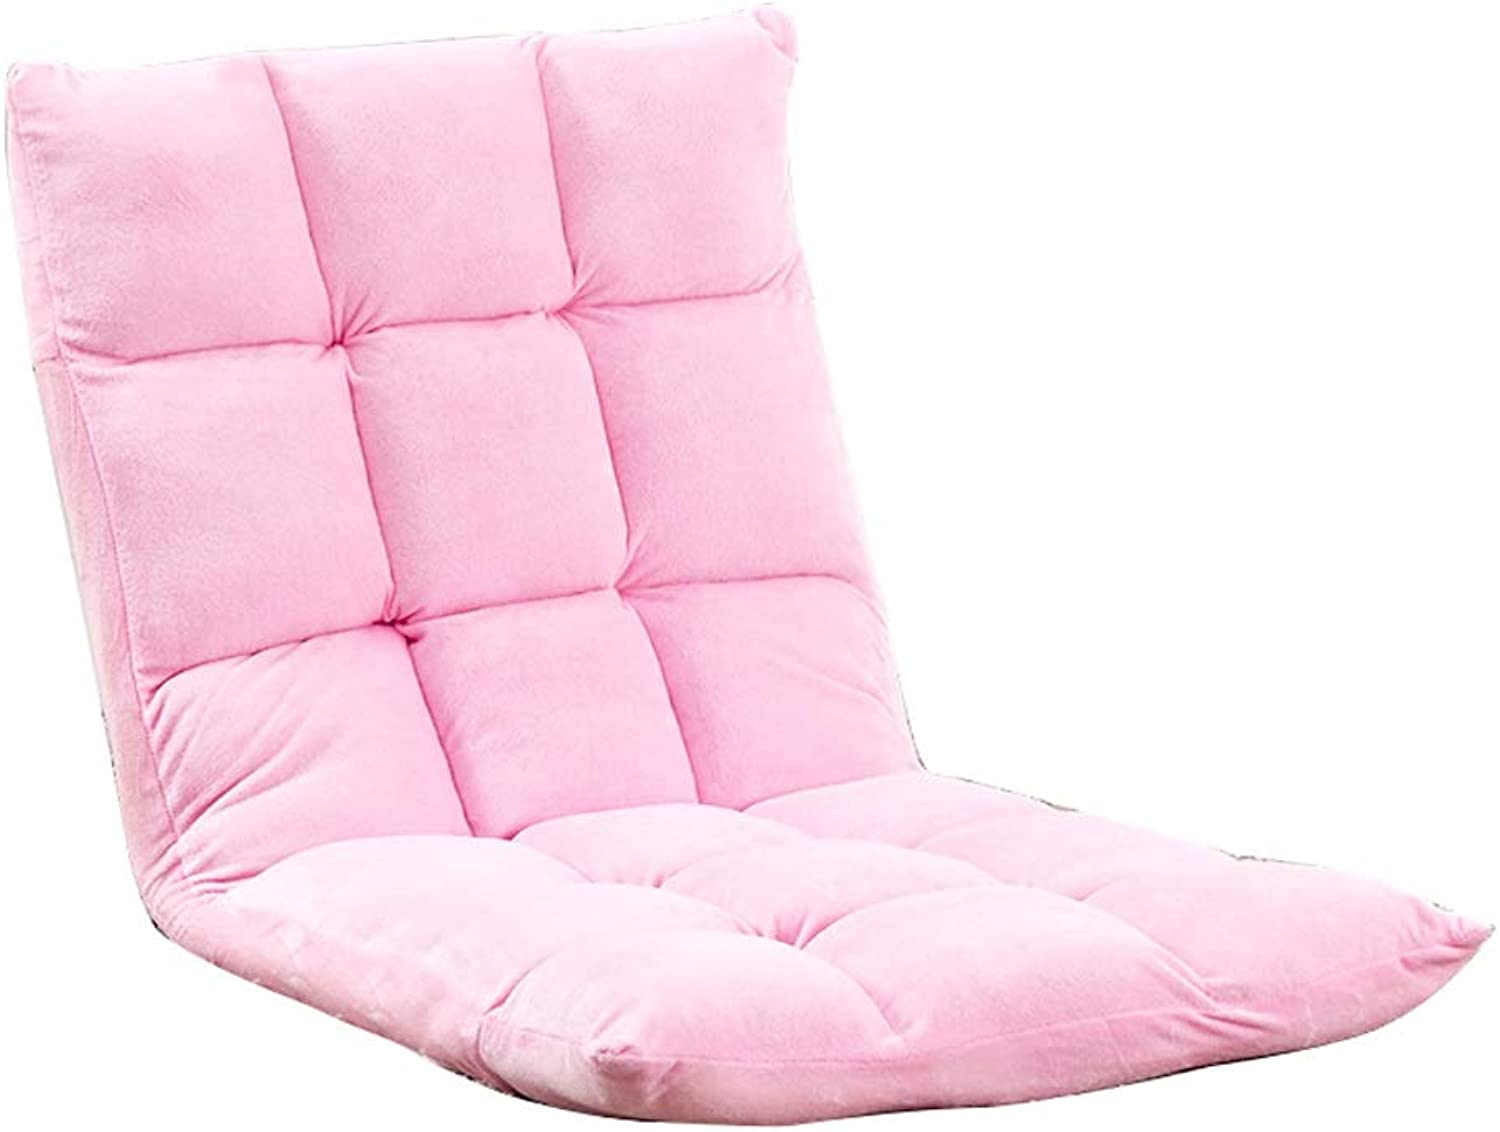 Floor Seating, Foldable Meditation Chair Lazy Couch Chair Bed Computer Chair Bedroom Bay Window Leisure Chair, Multi-color Optional (color   Pink)